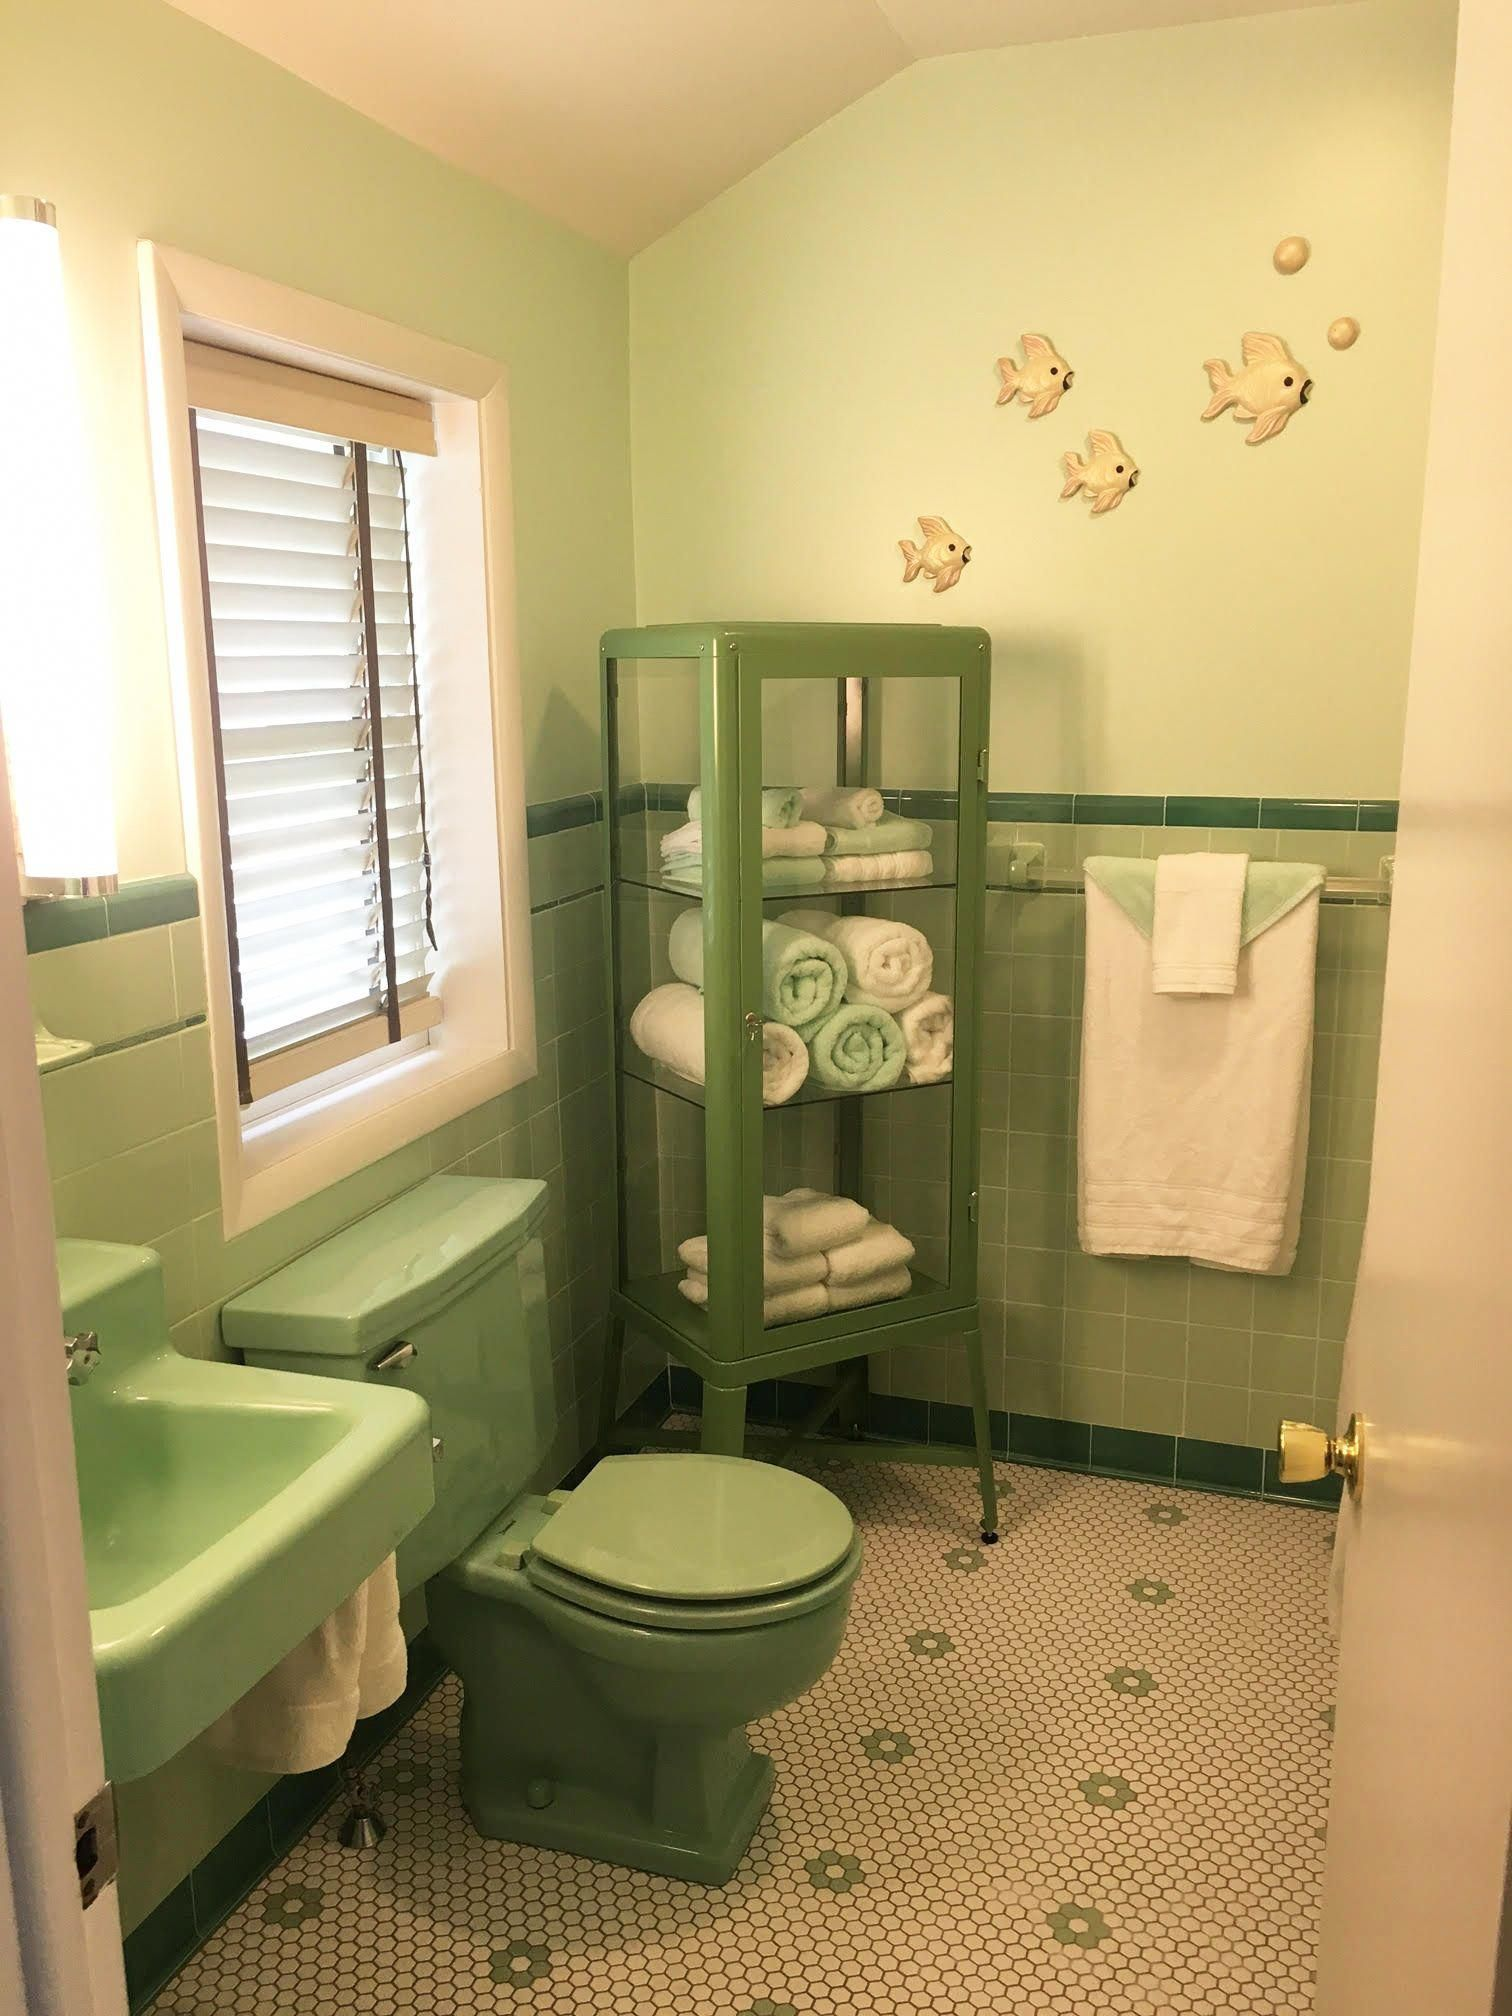 Want To Re Do You Bathroom But Keep With The Period Check Out Our Mid Century Tile Line For The Perfect Ret Green Tile Bathroom Retro Bathrooms Green Bathroom